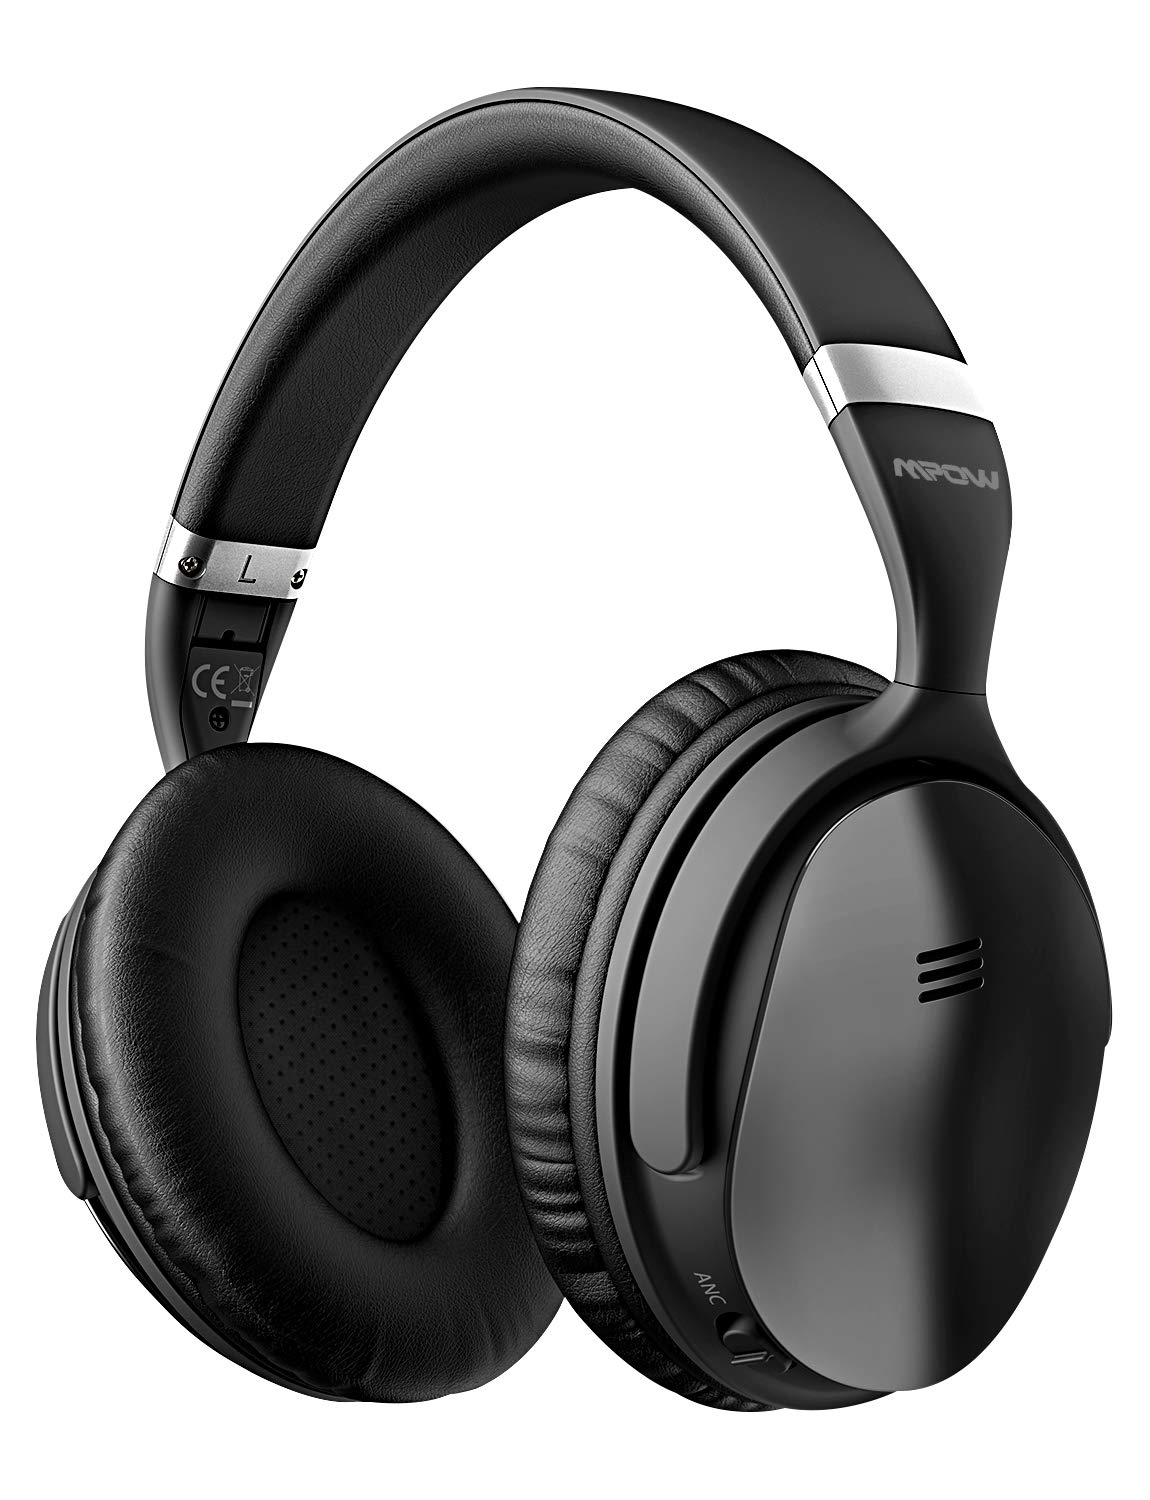 Mpow H5 Active Noise Cancelling Headphones, Superior Deep Bass Bluetooth Headphones Over Ear, 30Hrs Playtime ANC Wireless Headphones with Mic, Soft Protein Earpads, for TV/PC/Cellphone/Travel/Work by Mpow